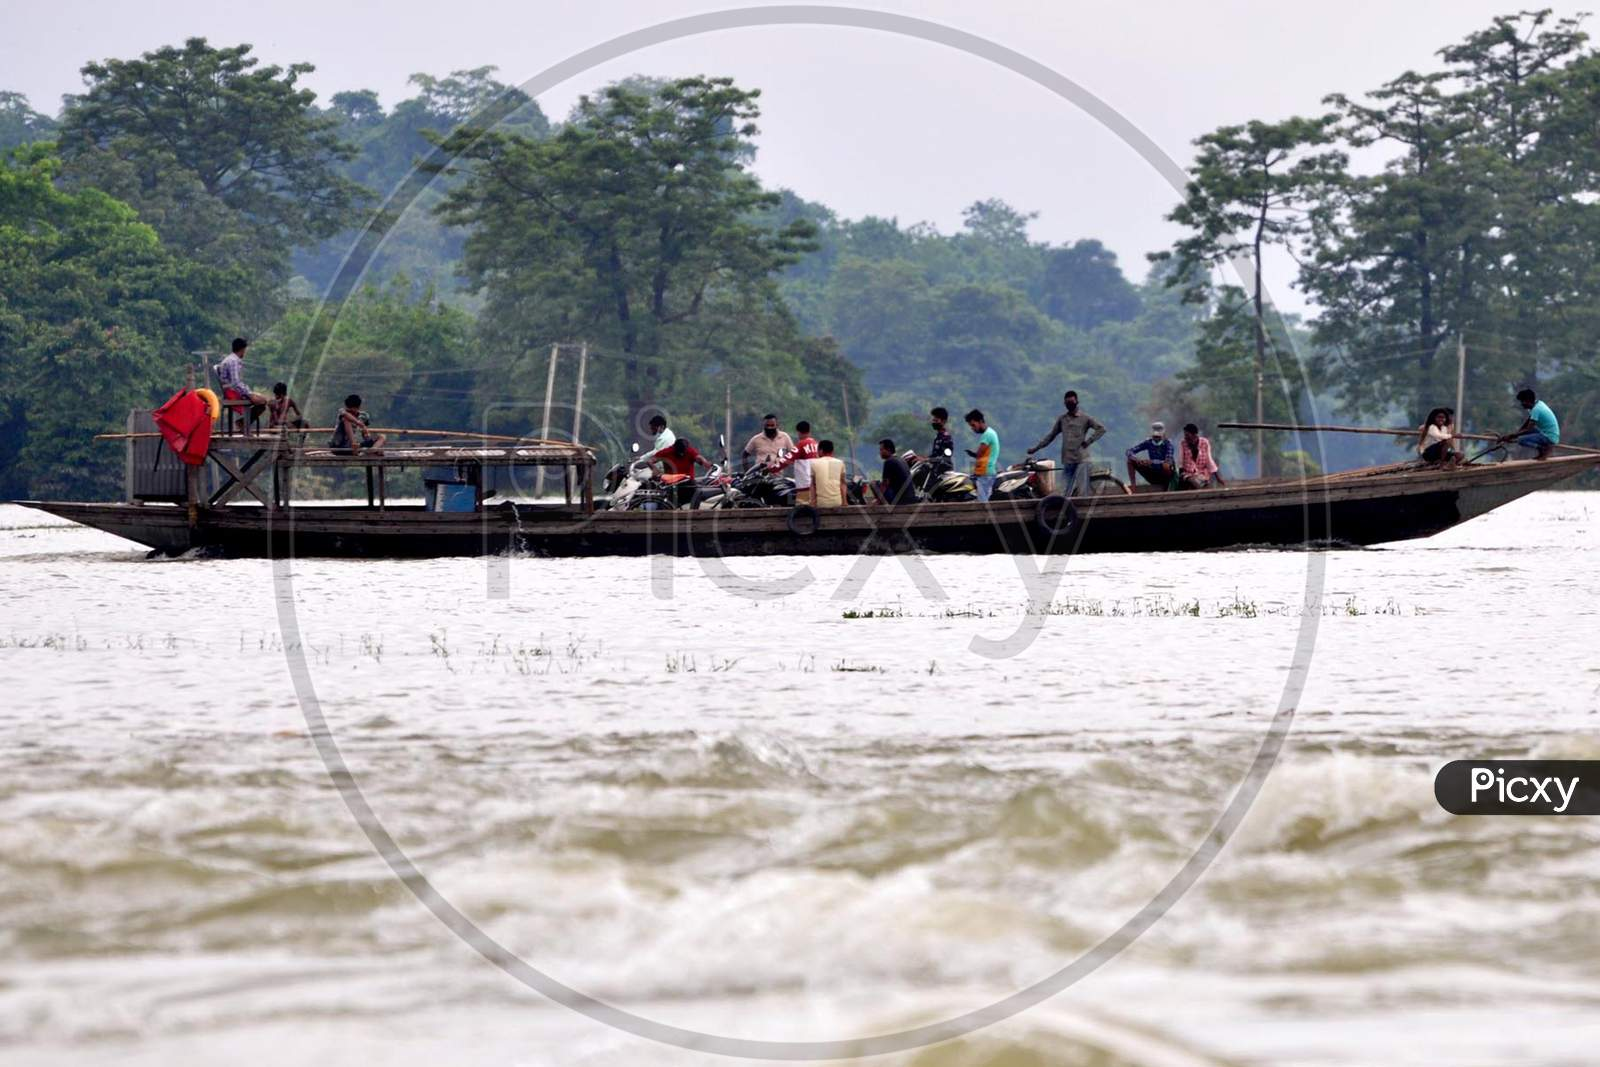 Villagers cross a flooded area on a boat at Mayong village in Morigaon, Assam on July 18, 2020